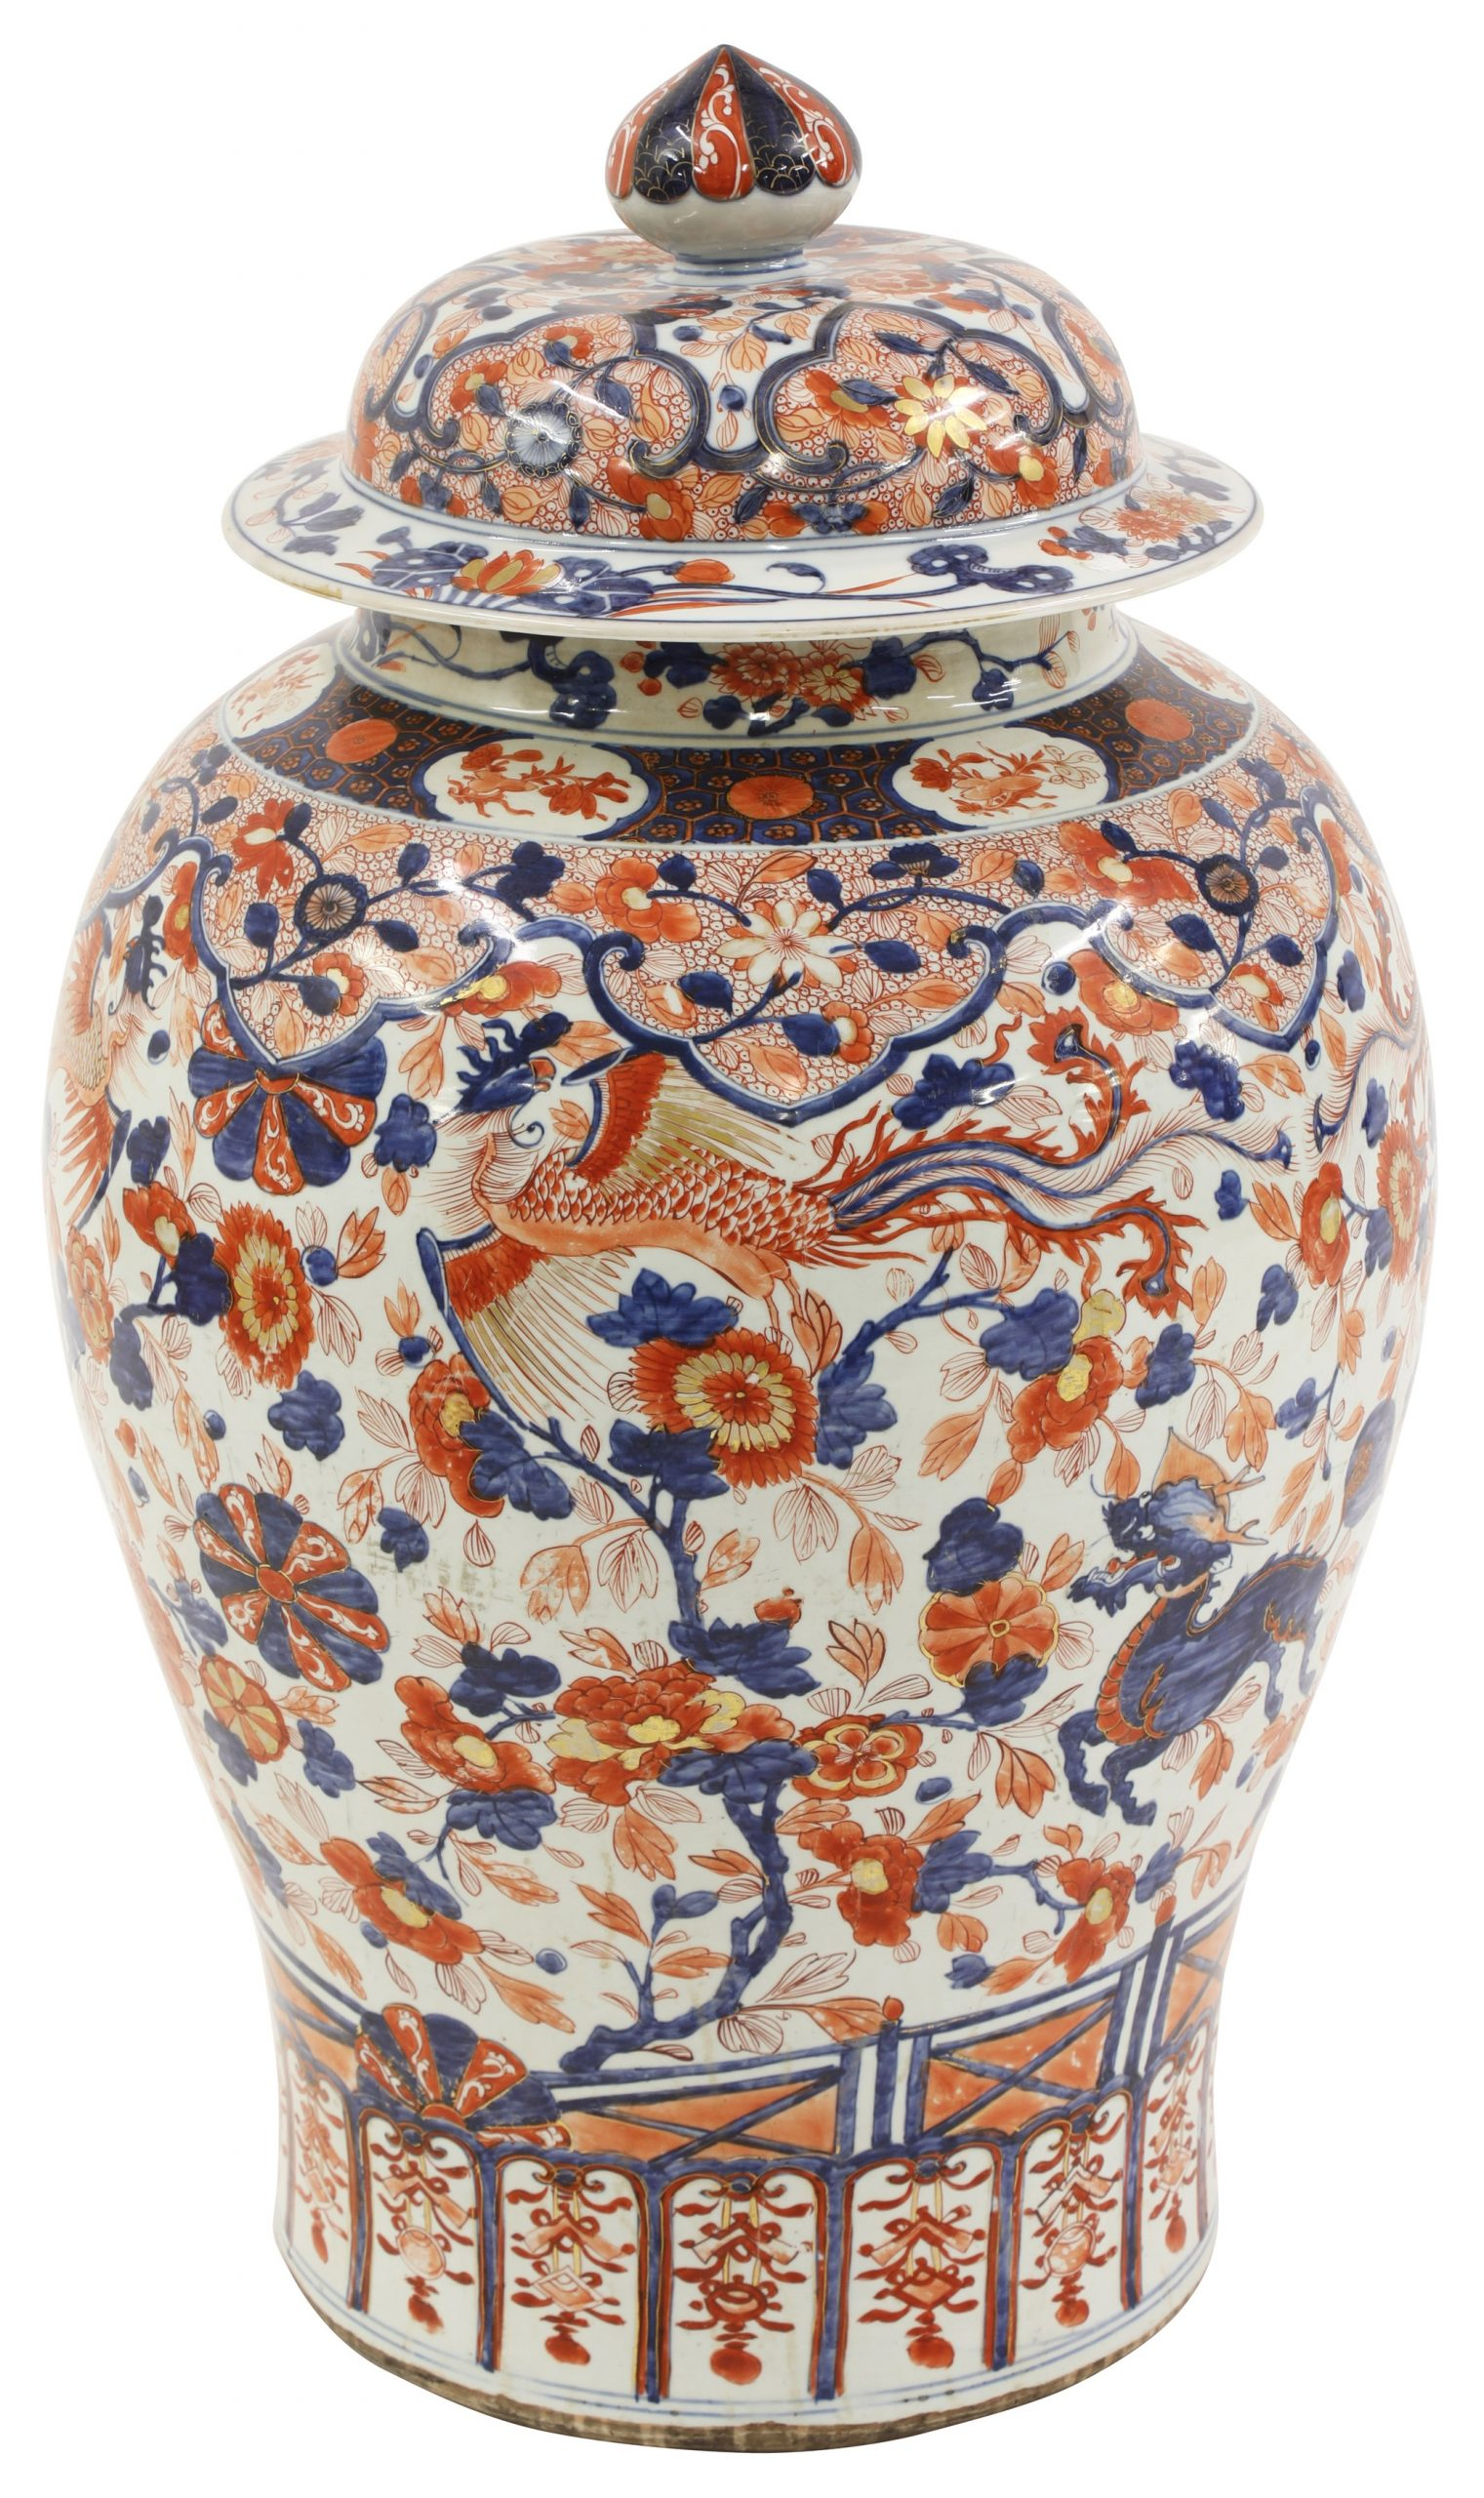 Of baluster form, painted with phoenixes and qilin among foliage in a garden, between a ruyi-shaped border to the shoulder and upright petal lappets near the foot, 64cm high, and a matching Samson domed cover, 18th century, similarly decorated with a spear finial, overall 80cm high (2) 清康熙 伊万里式凤凰麒麟纹大罐 连十八世纪 法国Samson仿伊万里式盖